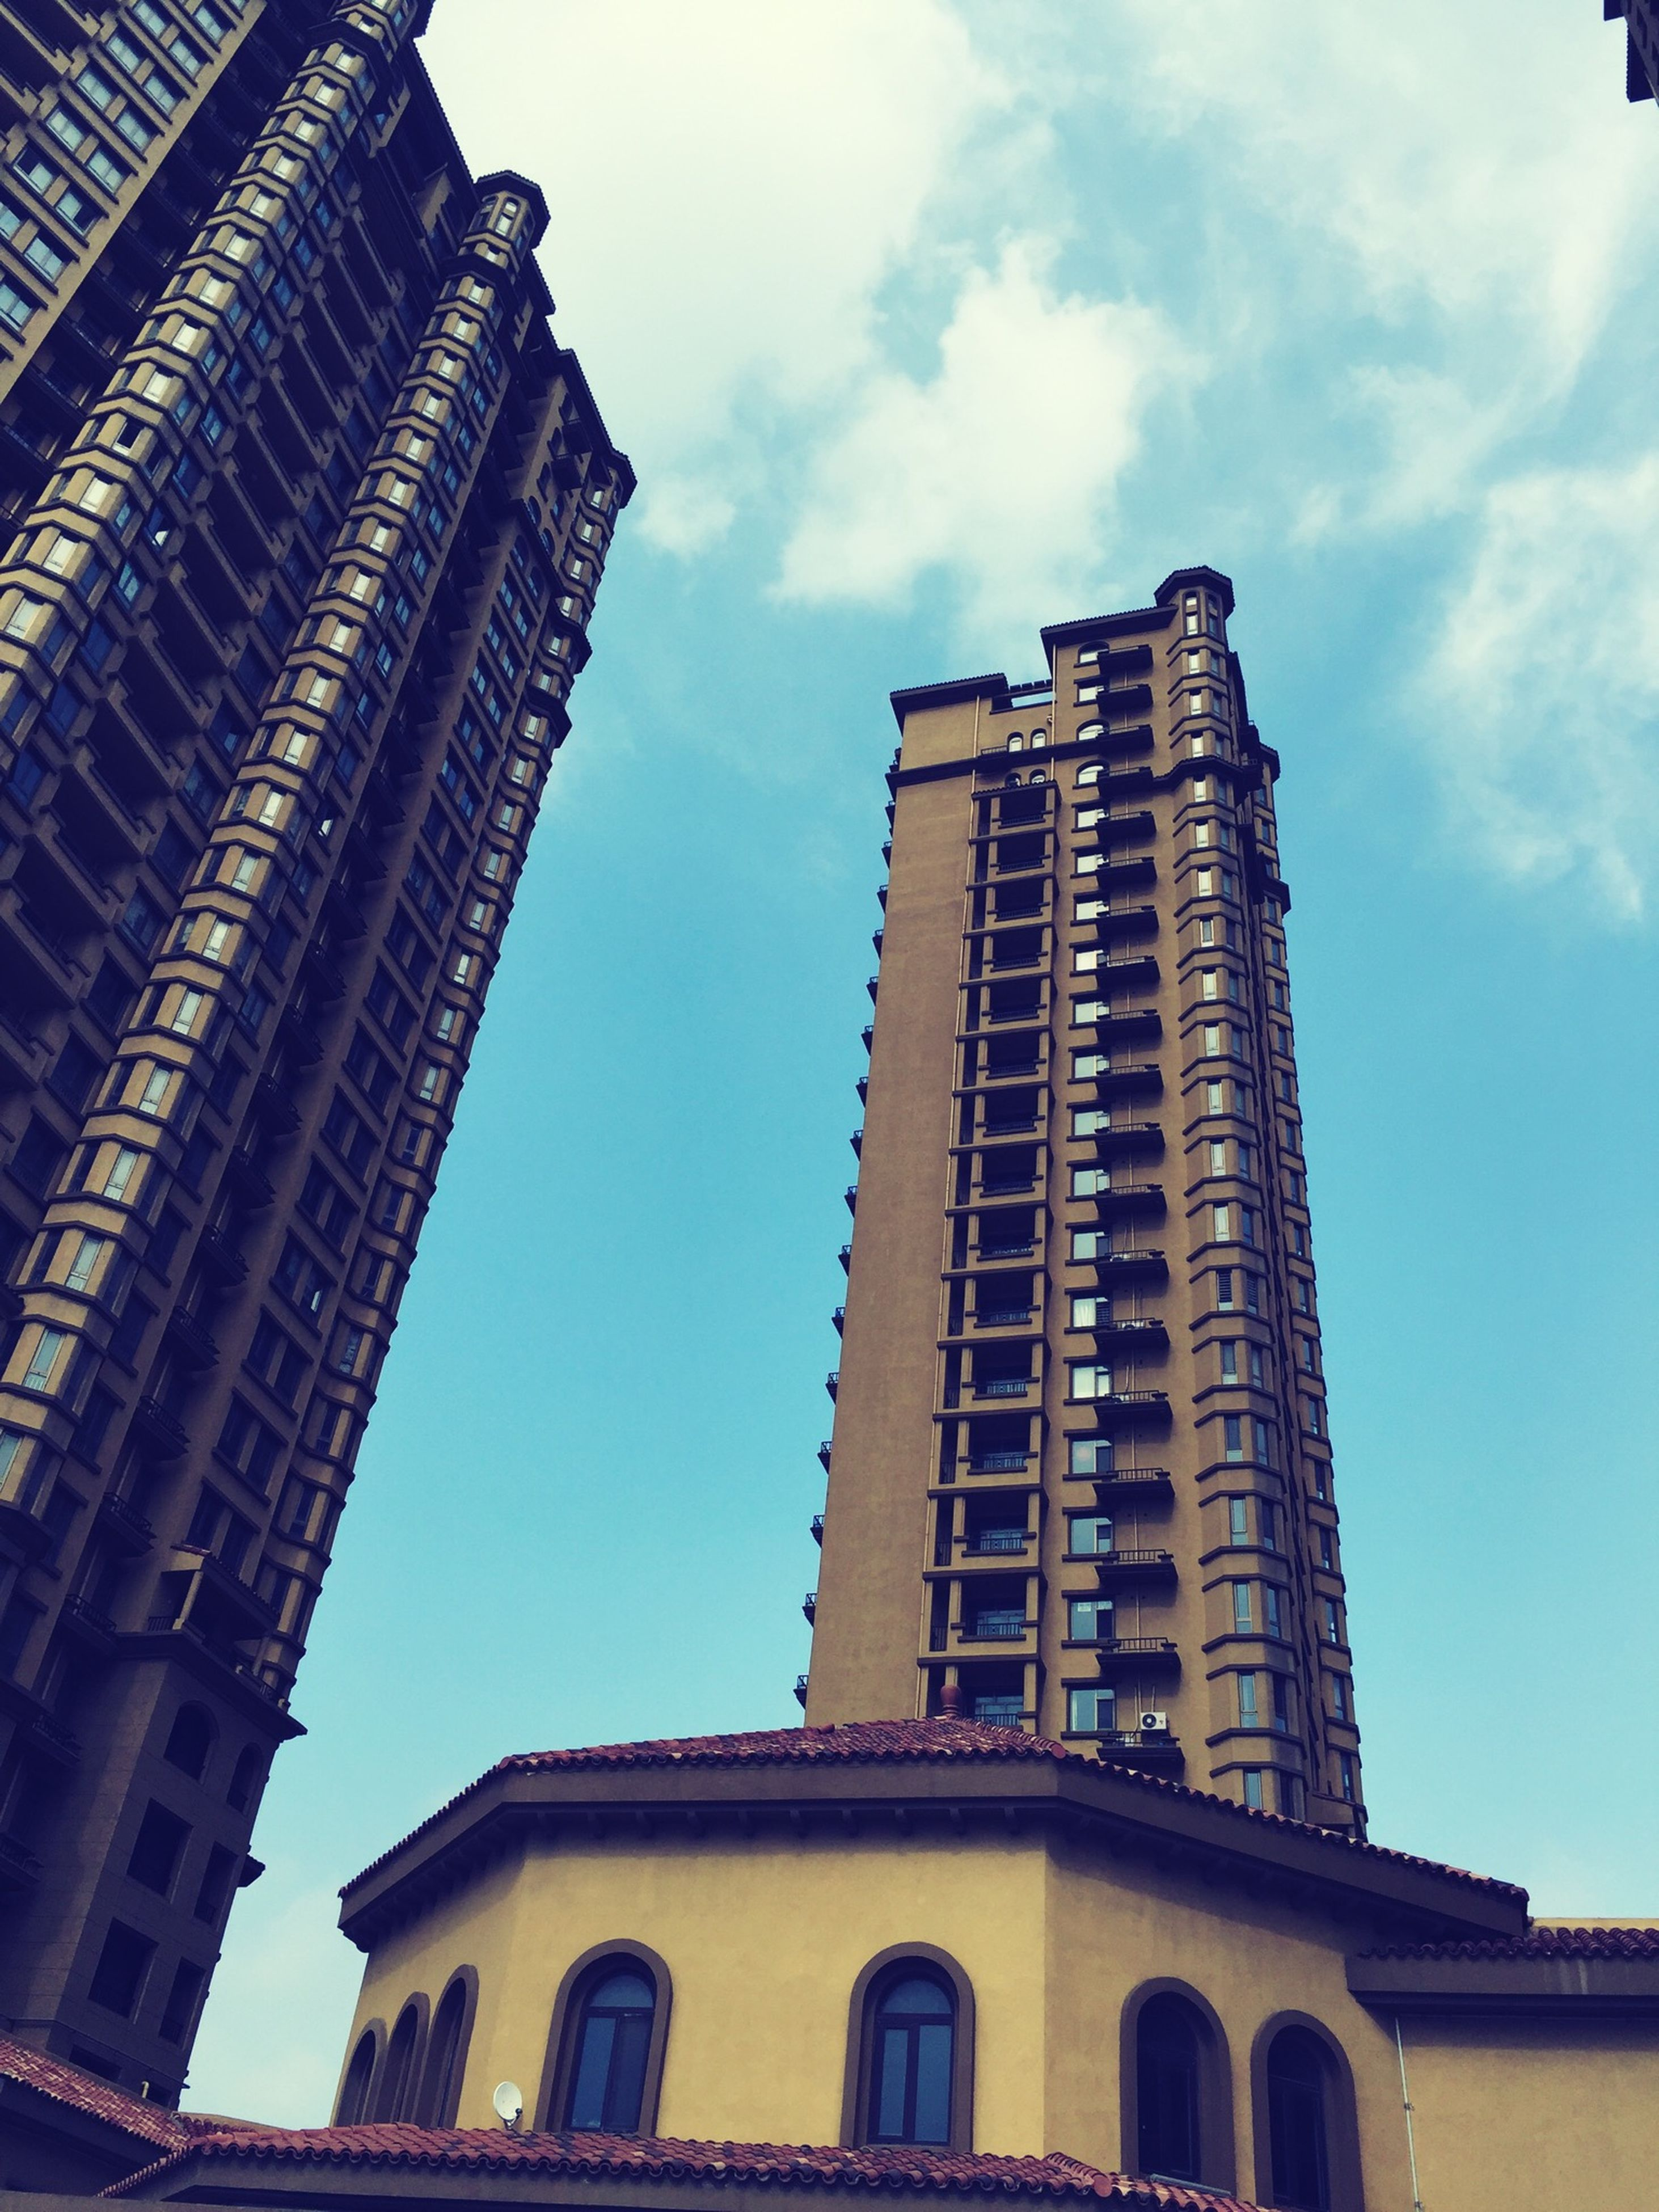 architecture, building exterior, built structure, low angle view, sky, city, building, window, tower, outdoors, cloud - sky, tall - high, day, cloud, no people, arch, travel destinations, history, city life, residential building